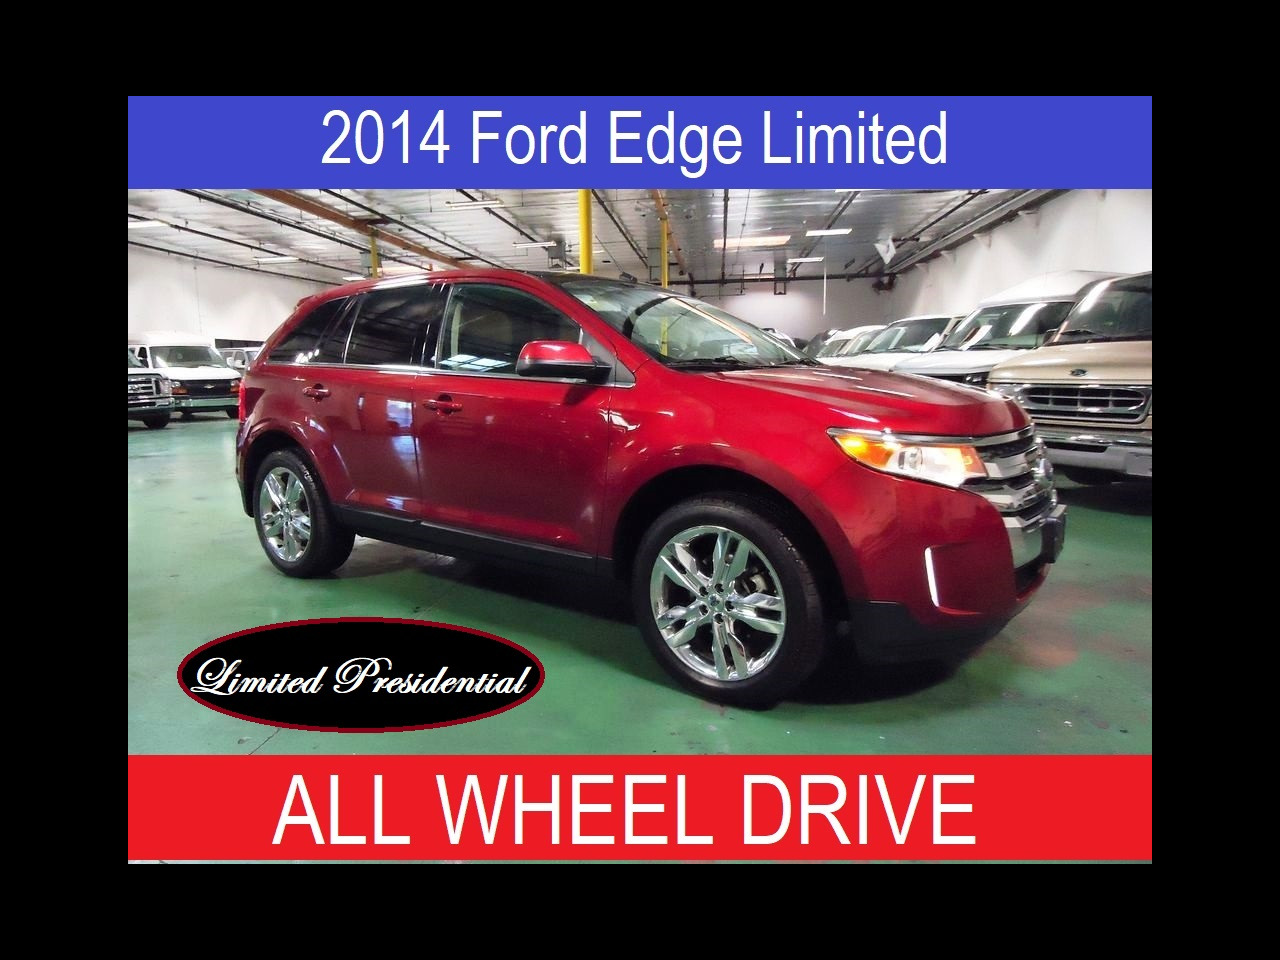 2014 Ford EDGE LIMIT EDGE LIMITED AWD PRESIDENTIAL